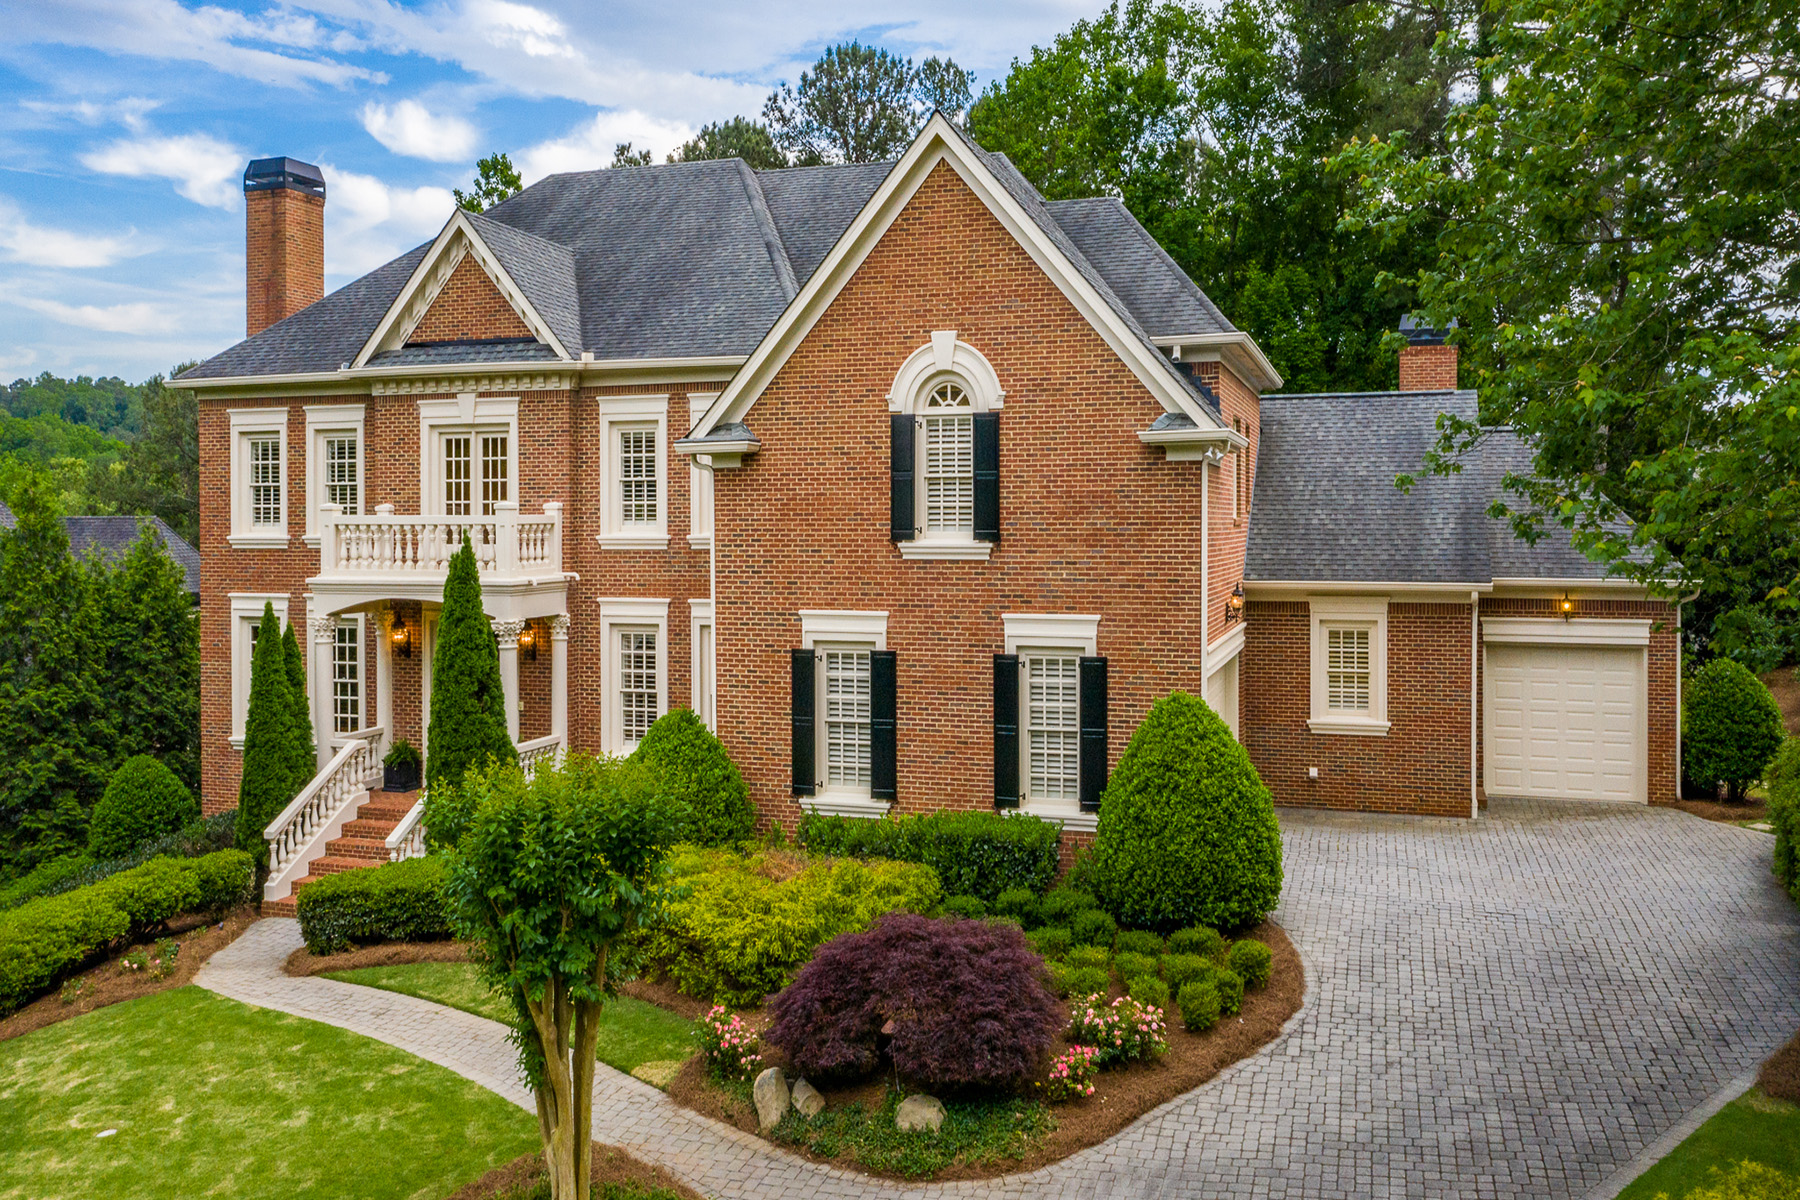 Single Family Homes for Active at Exquisite All Brick Masterpiece 4770 Rivercliff Landing Marietta, Georgia 30067 United States